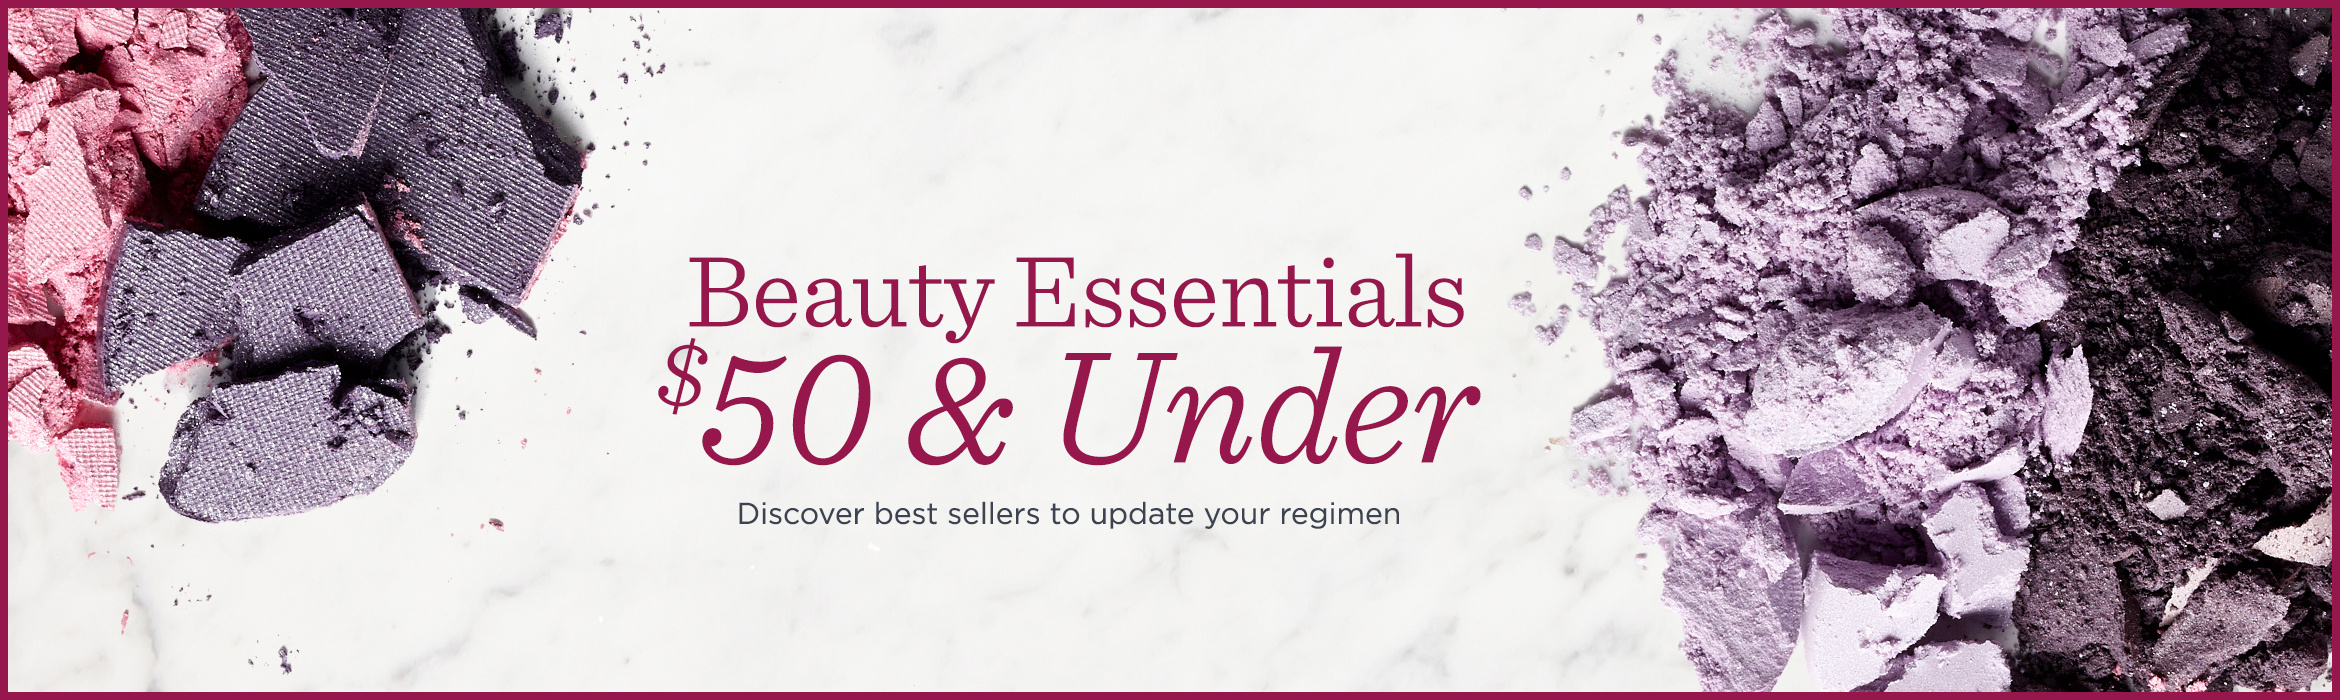 Beauty Essentials $50 & Under  Discover best sellers to update your regimen